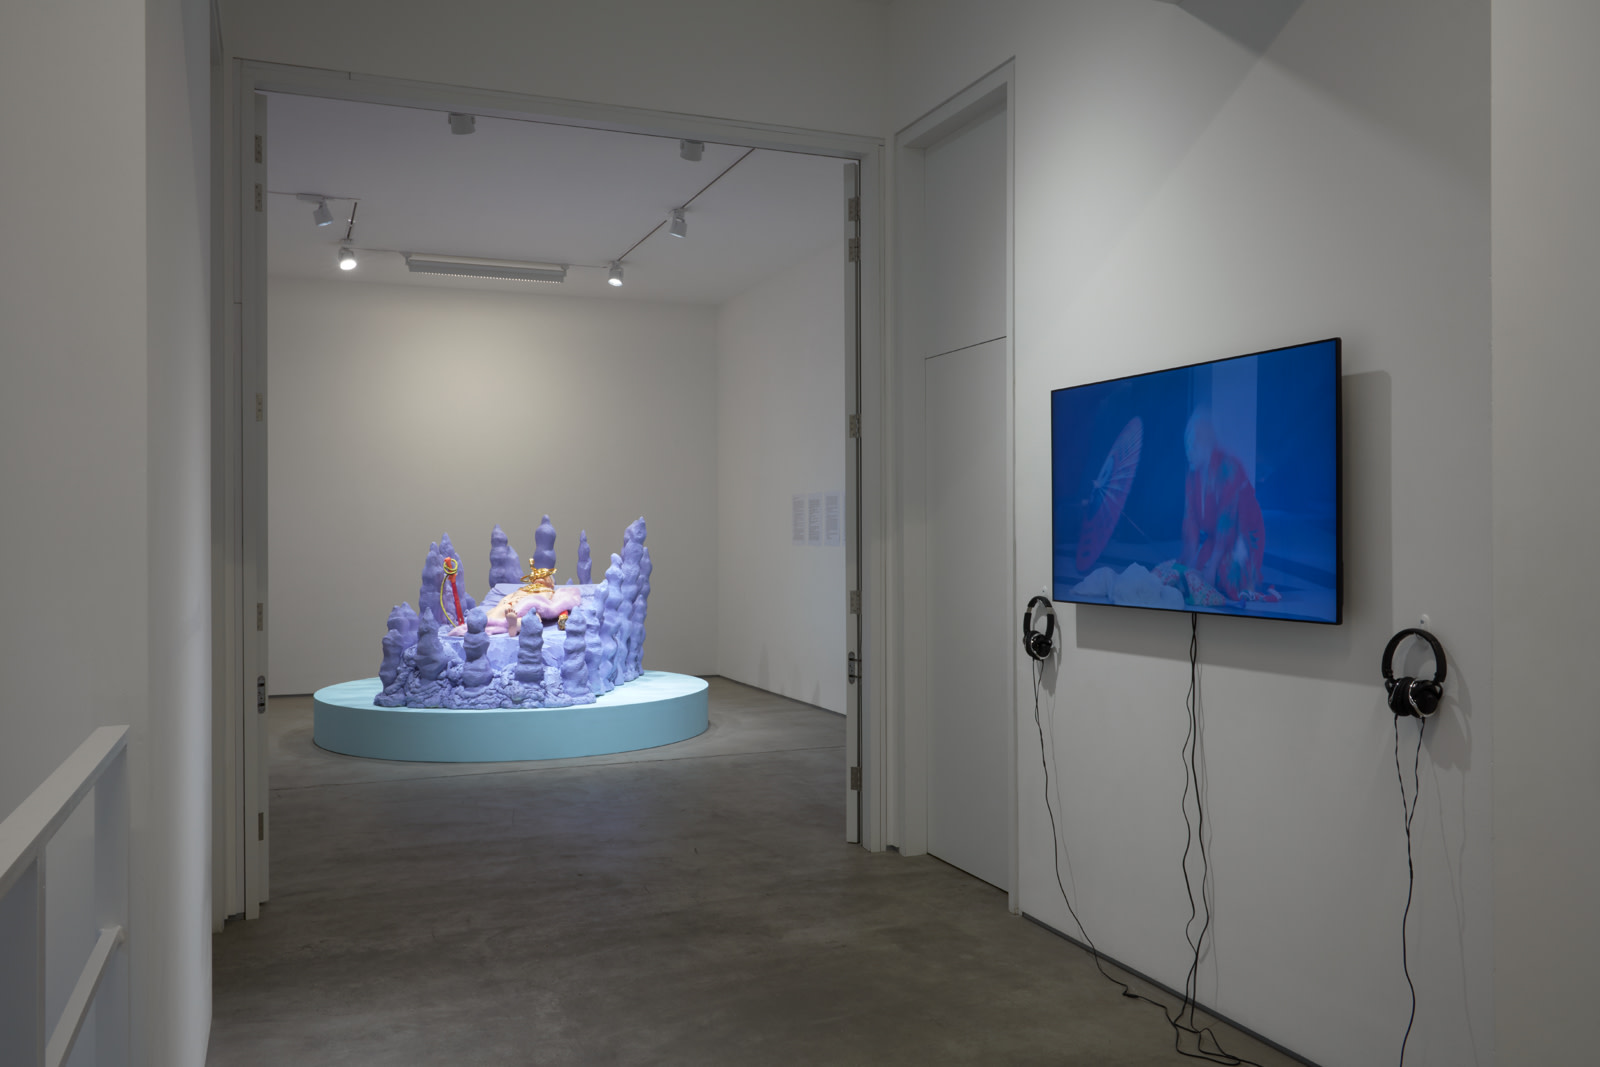 <p>Installation View, 2017<br />Photo by Robert Glowacki</p>